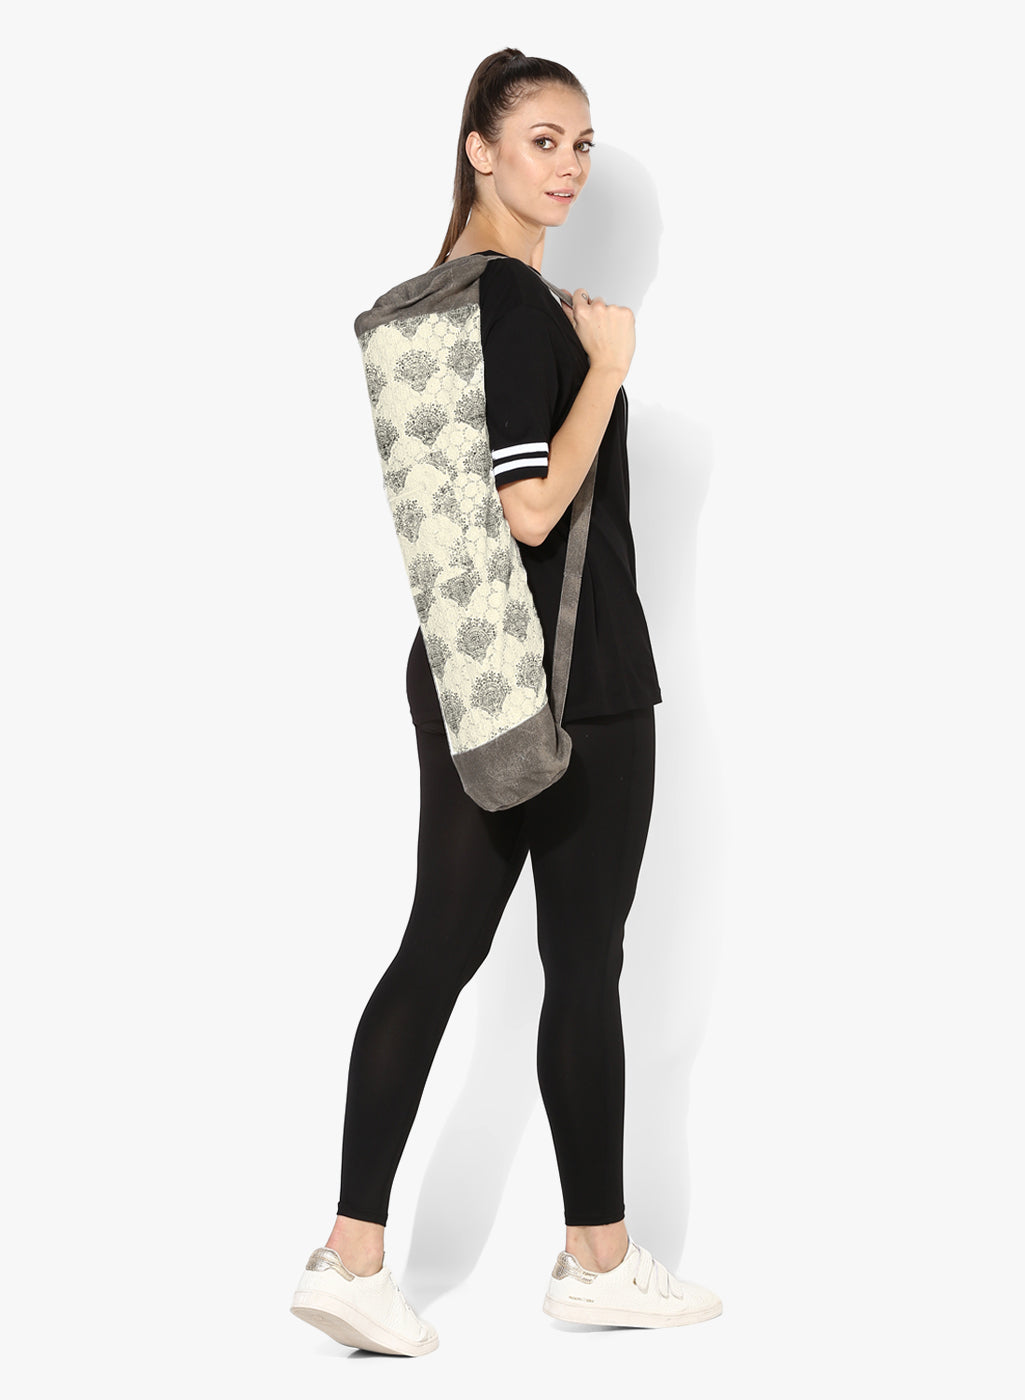 Shakti Warrior Asteya Yoga Mat Bag